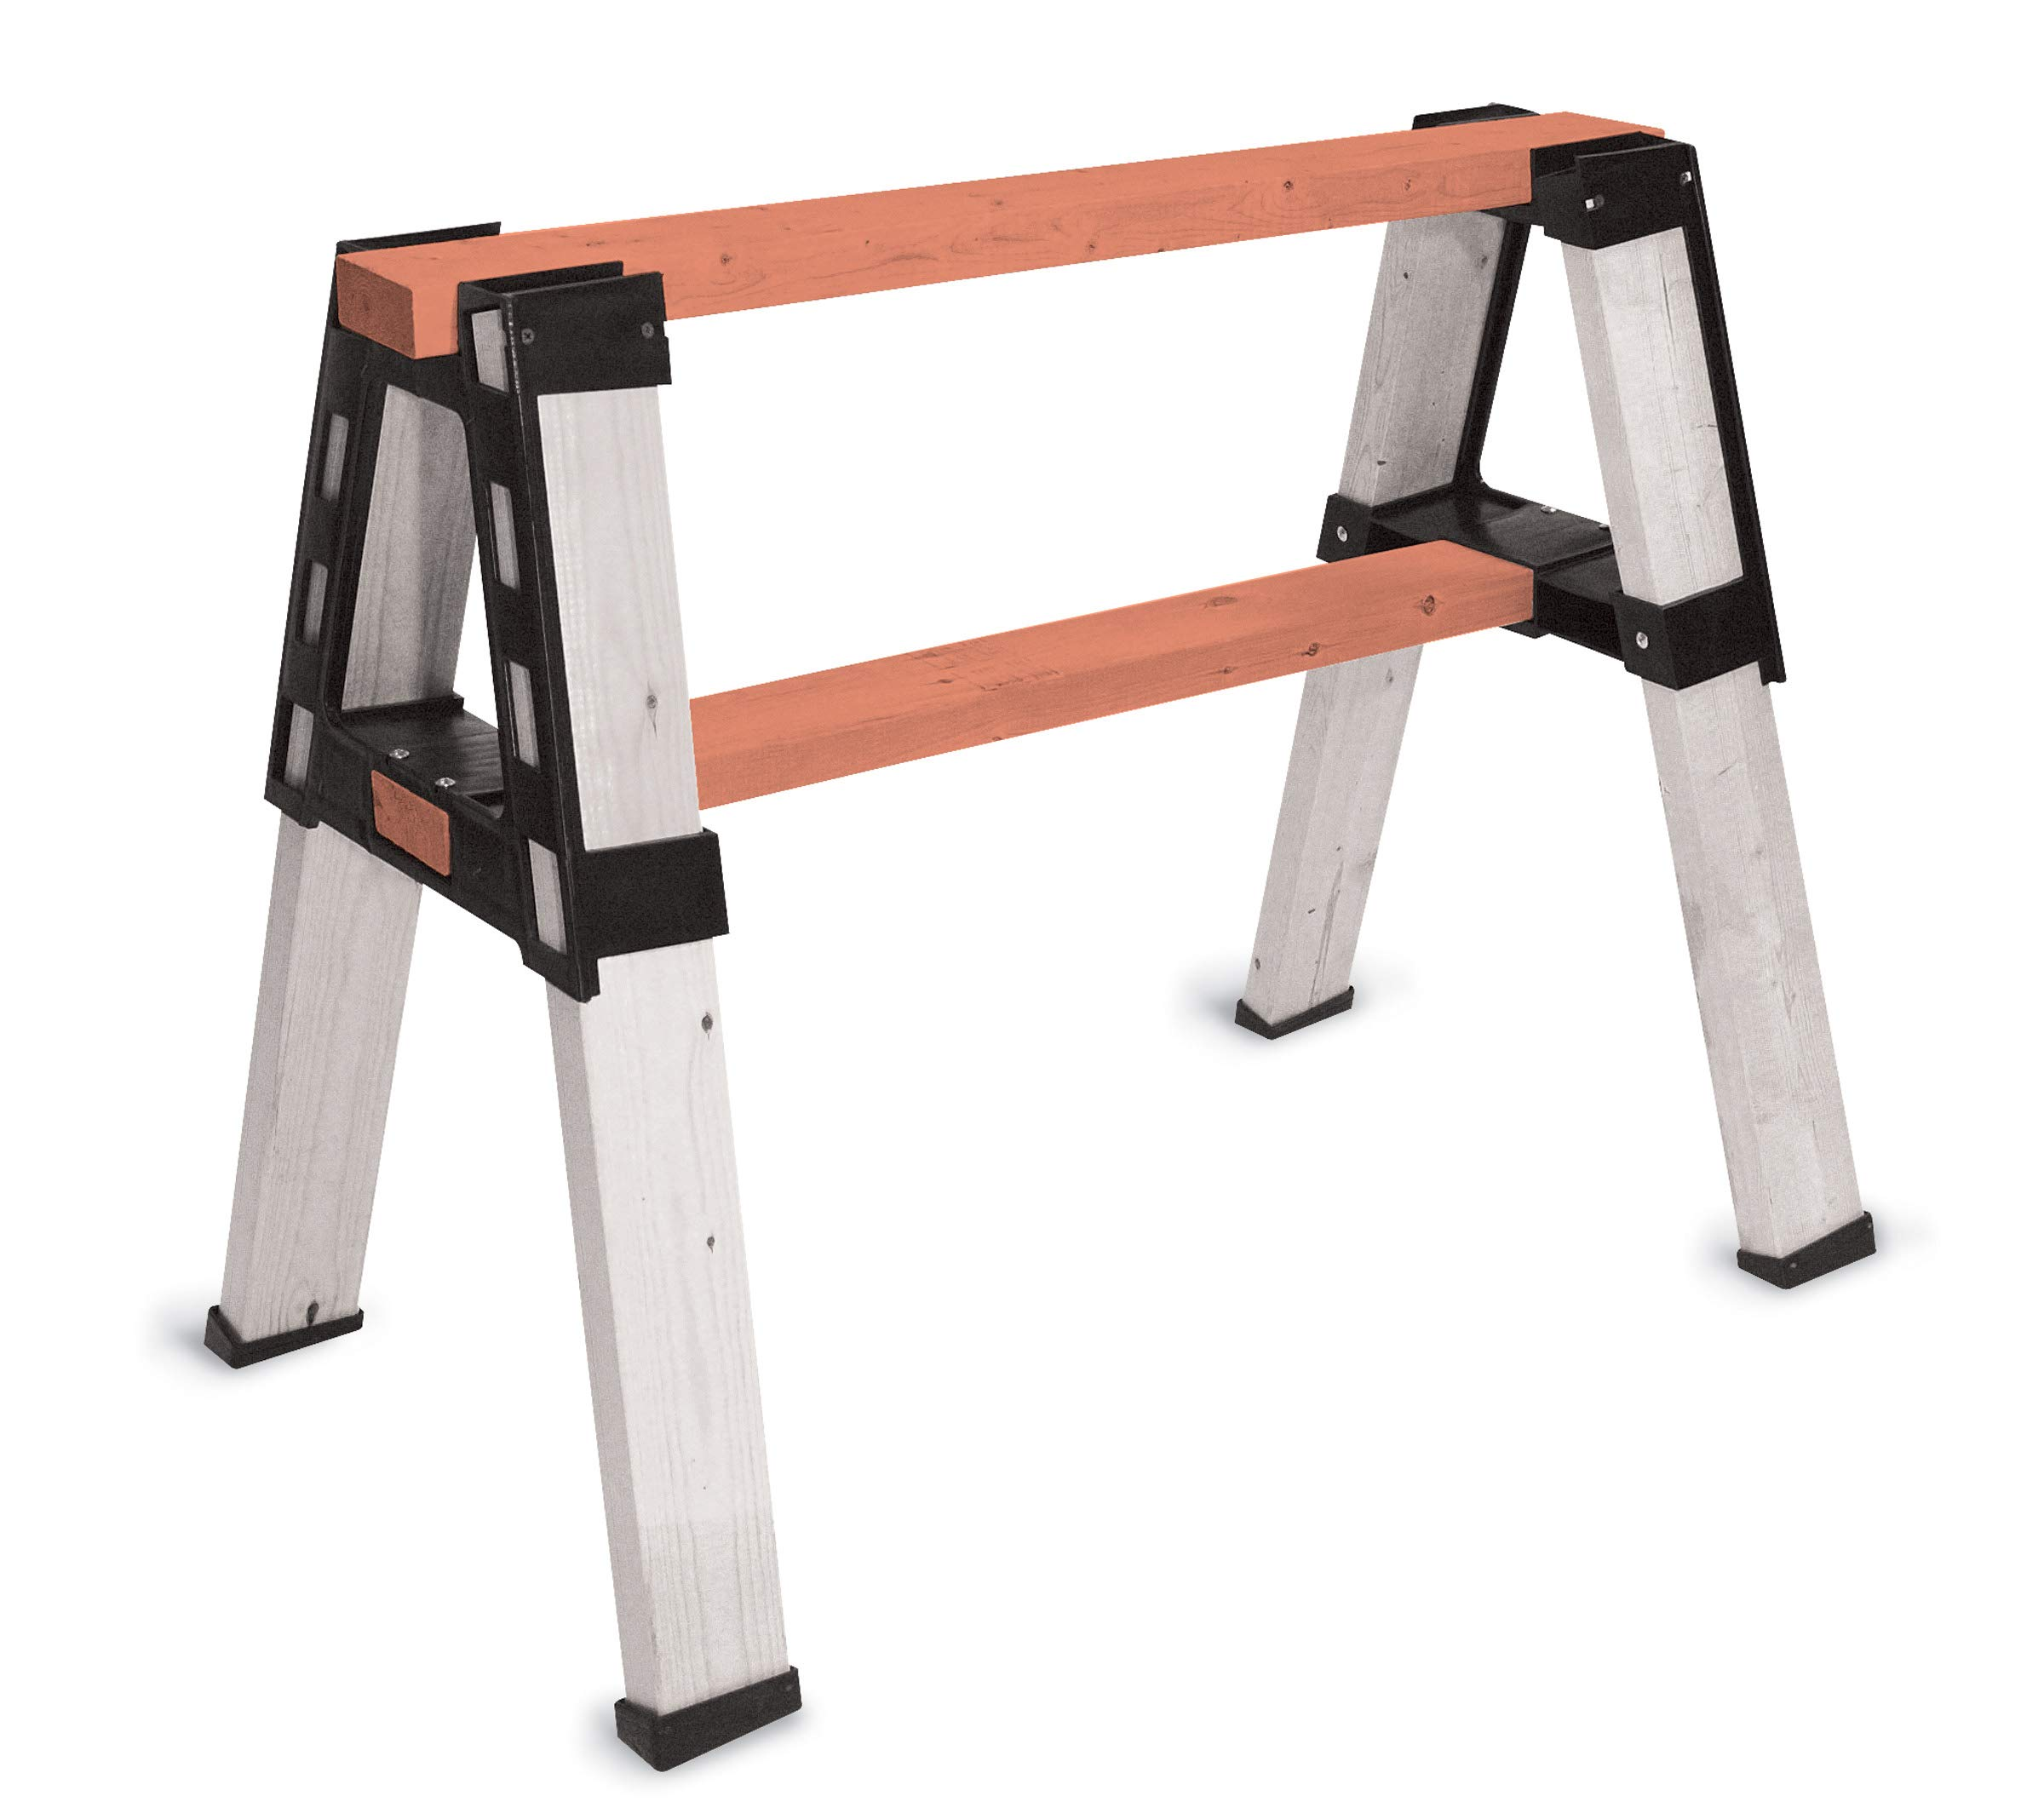 2x4basics 90196 Custom Pro Brackets Sawhorse - 2 Pack by 2x4 basics